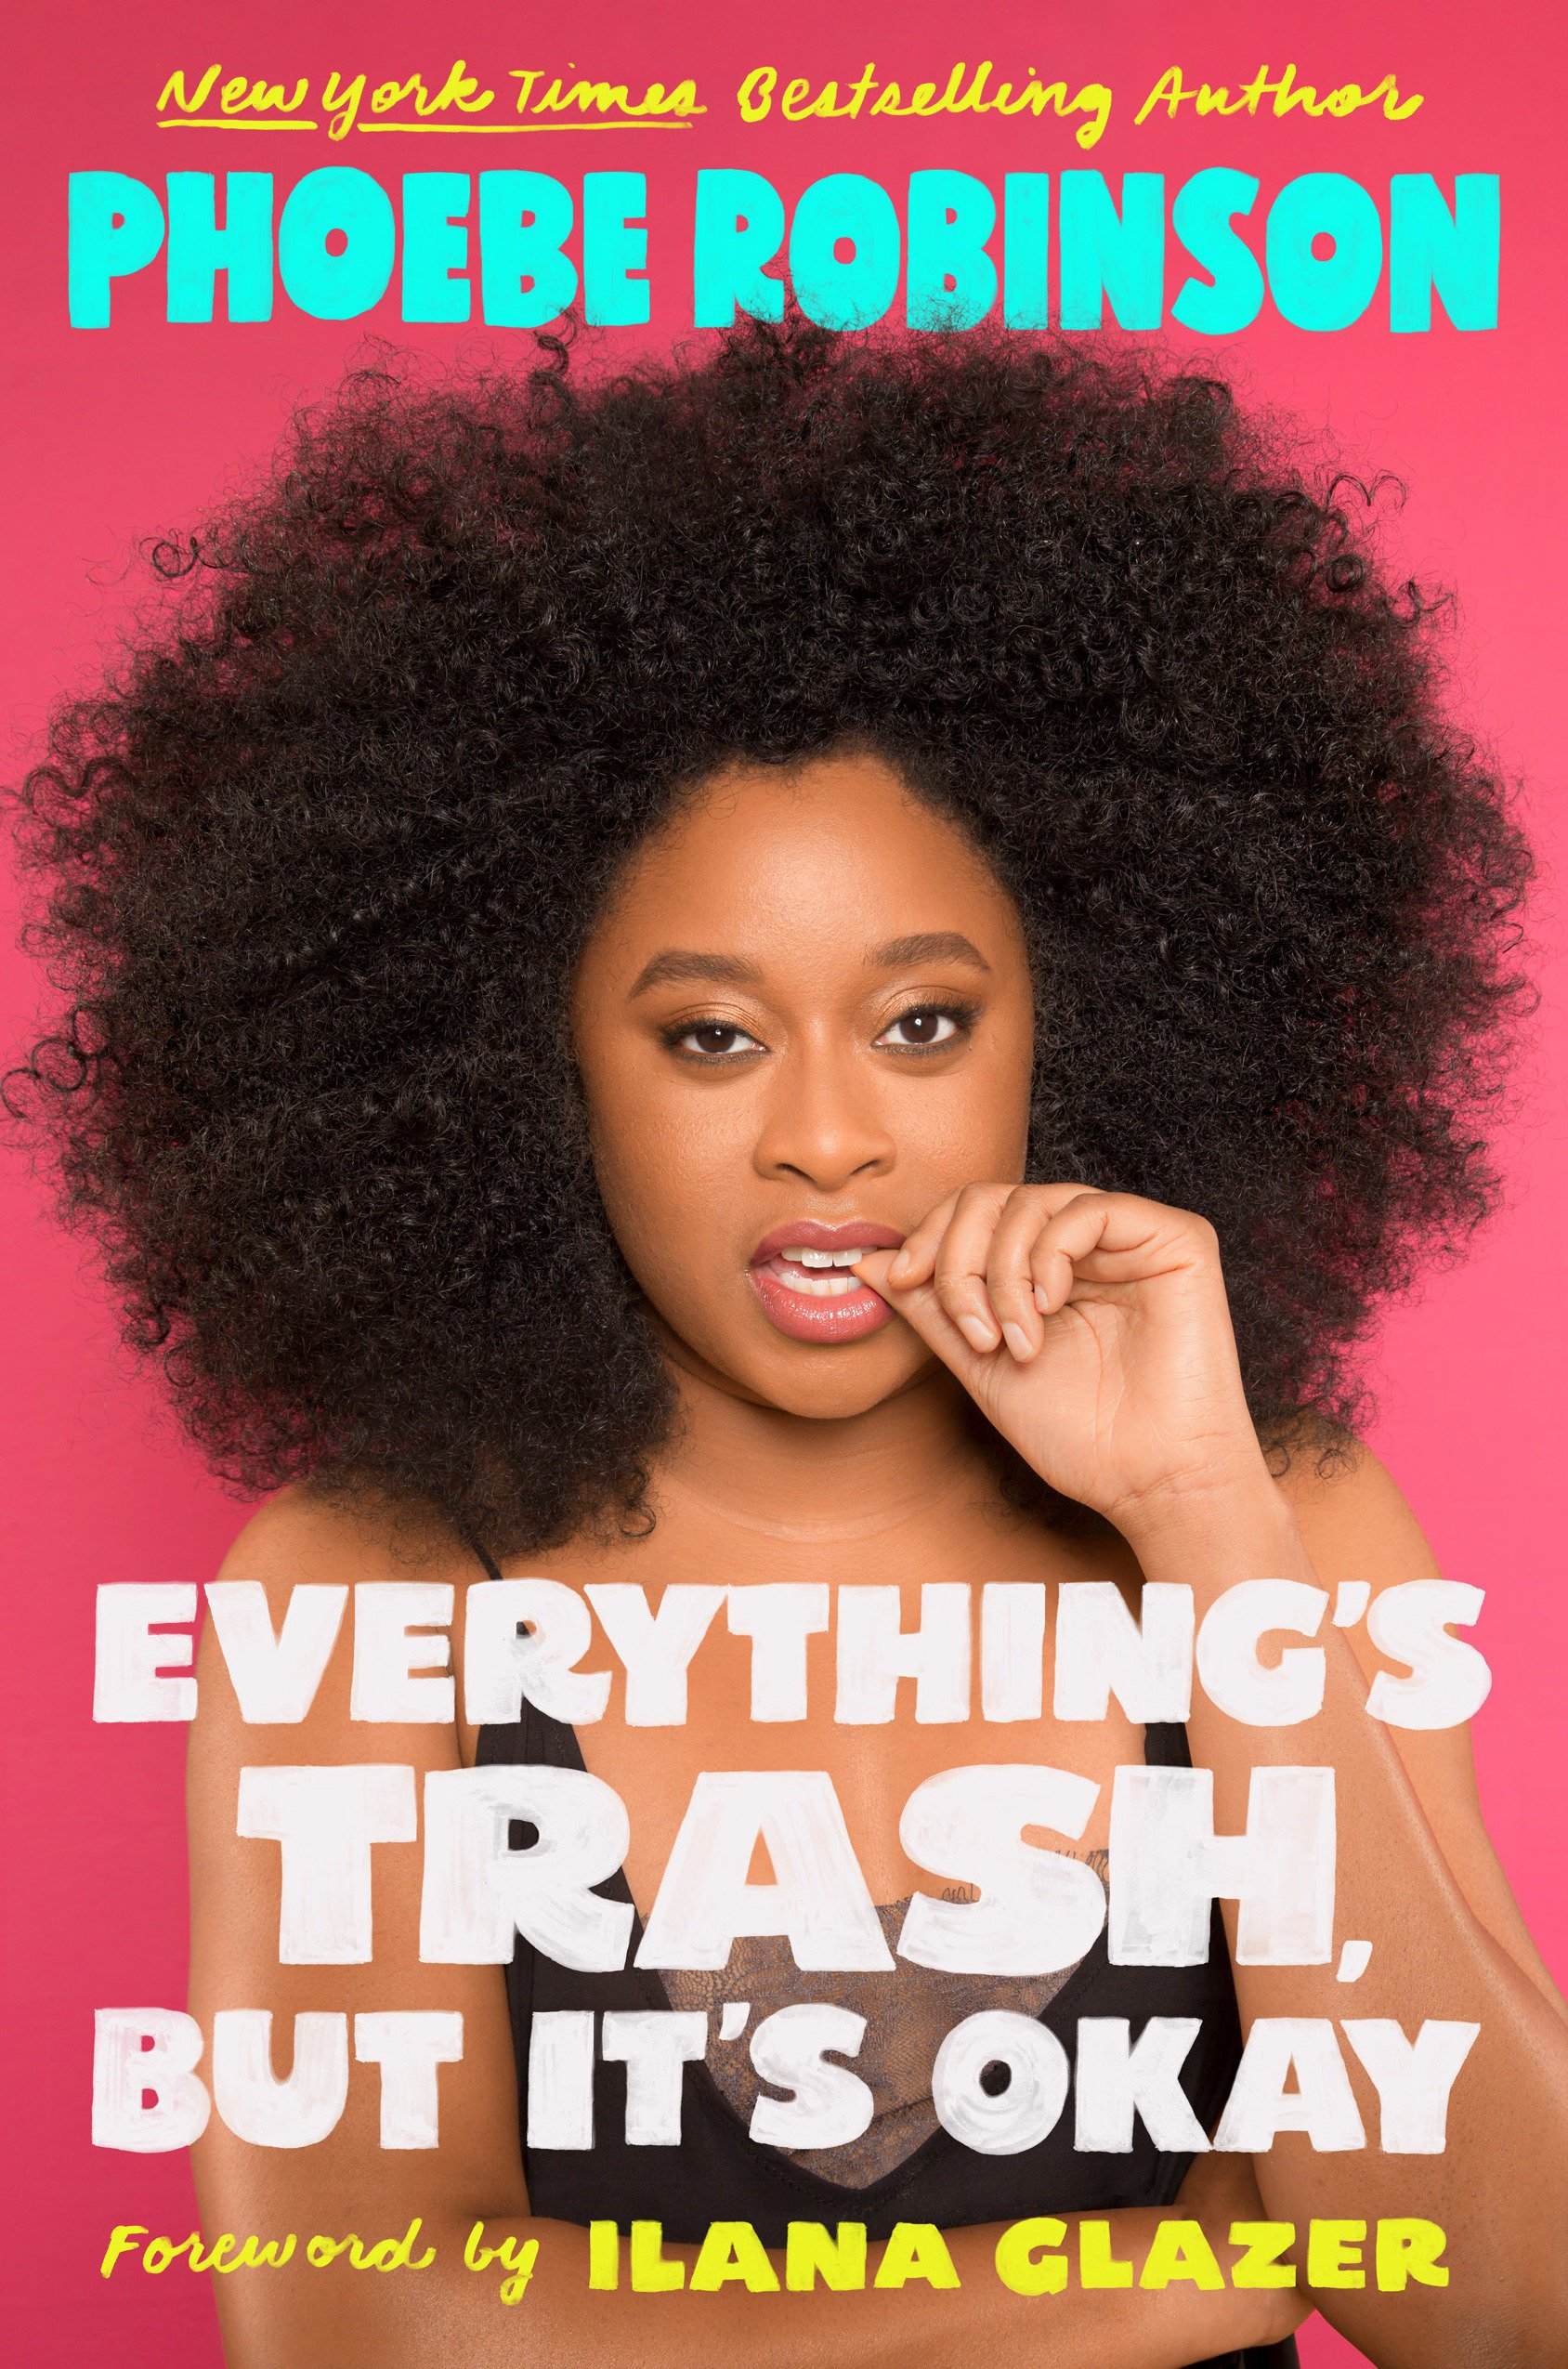 Image result for Everything's Trash but It's Okay by Phoebe Robinson